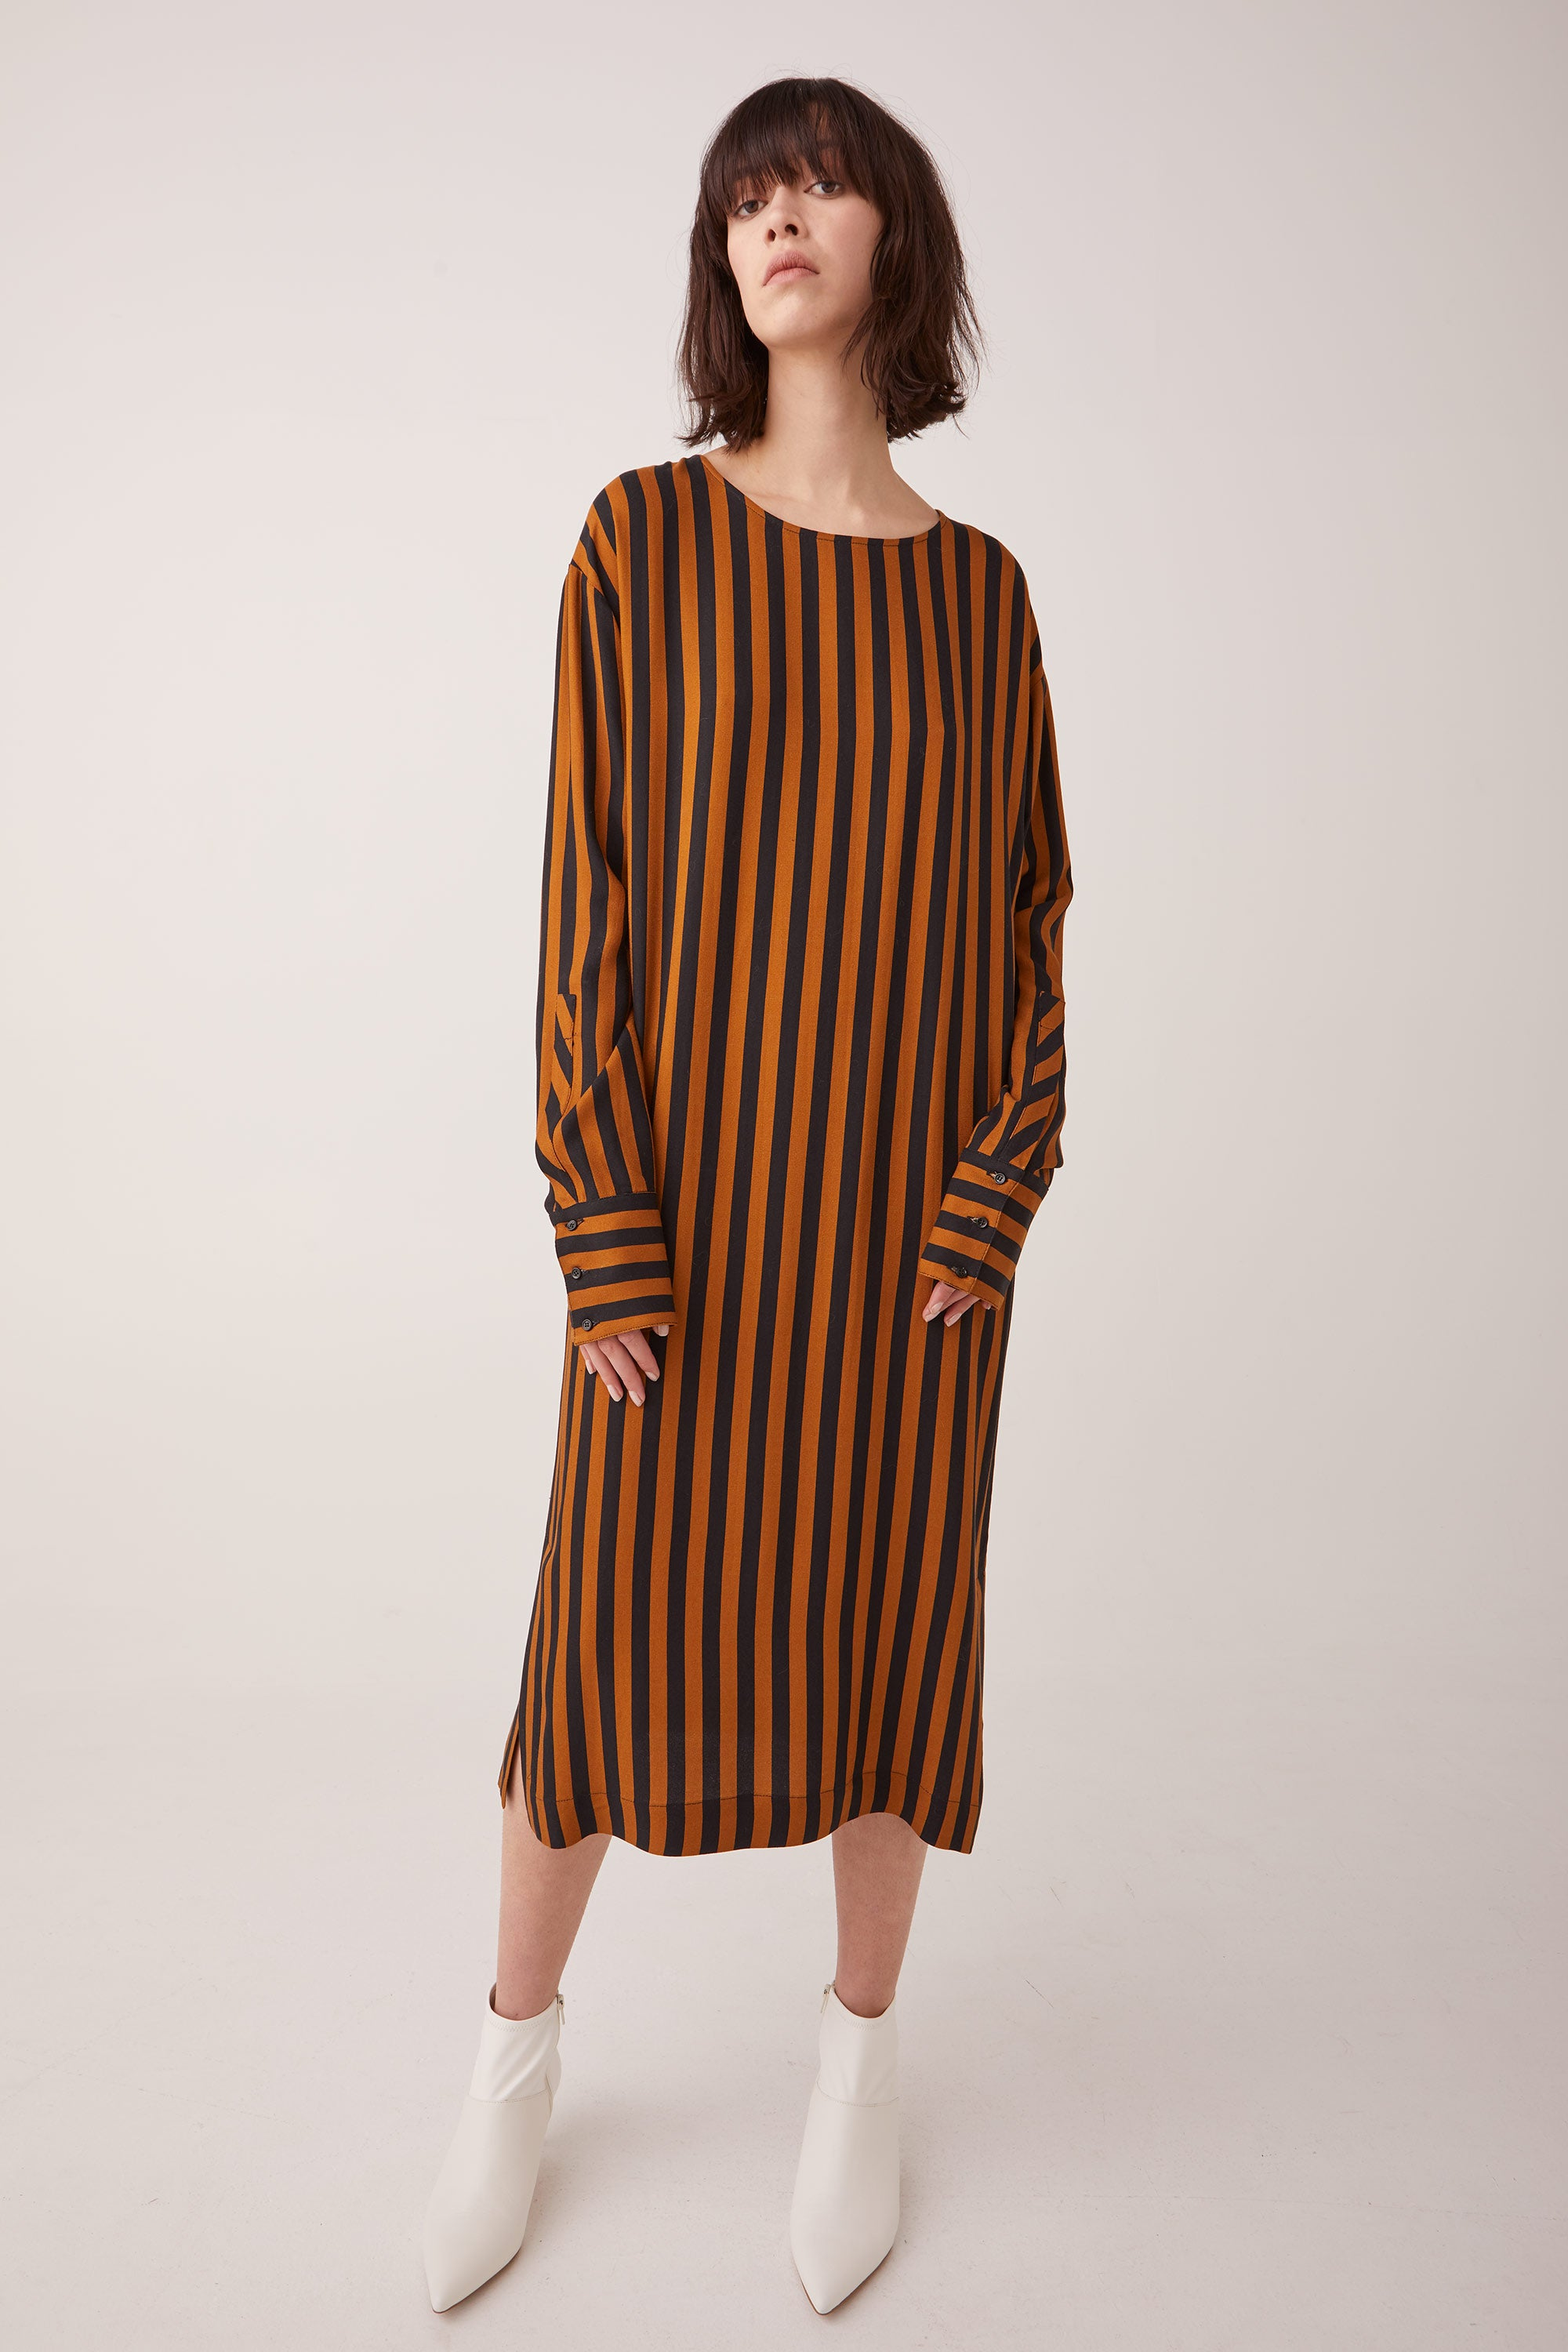 Ricochet NZ Fashion Designer Clothing Boutique AW19 Insane Dress Toffee Navy Stripe Made in NZ